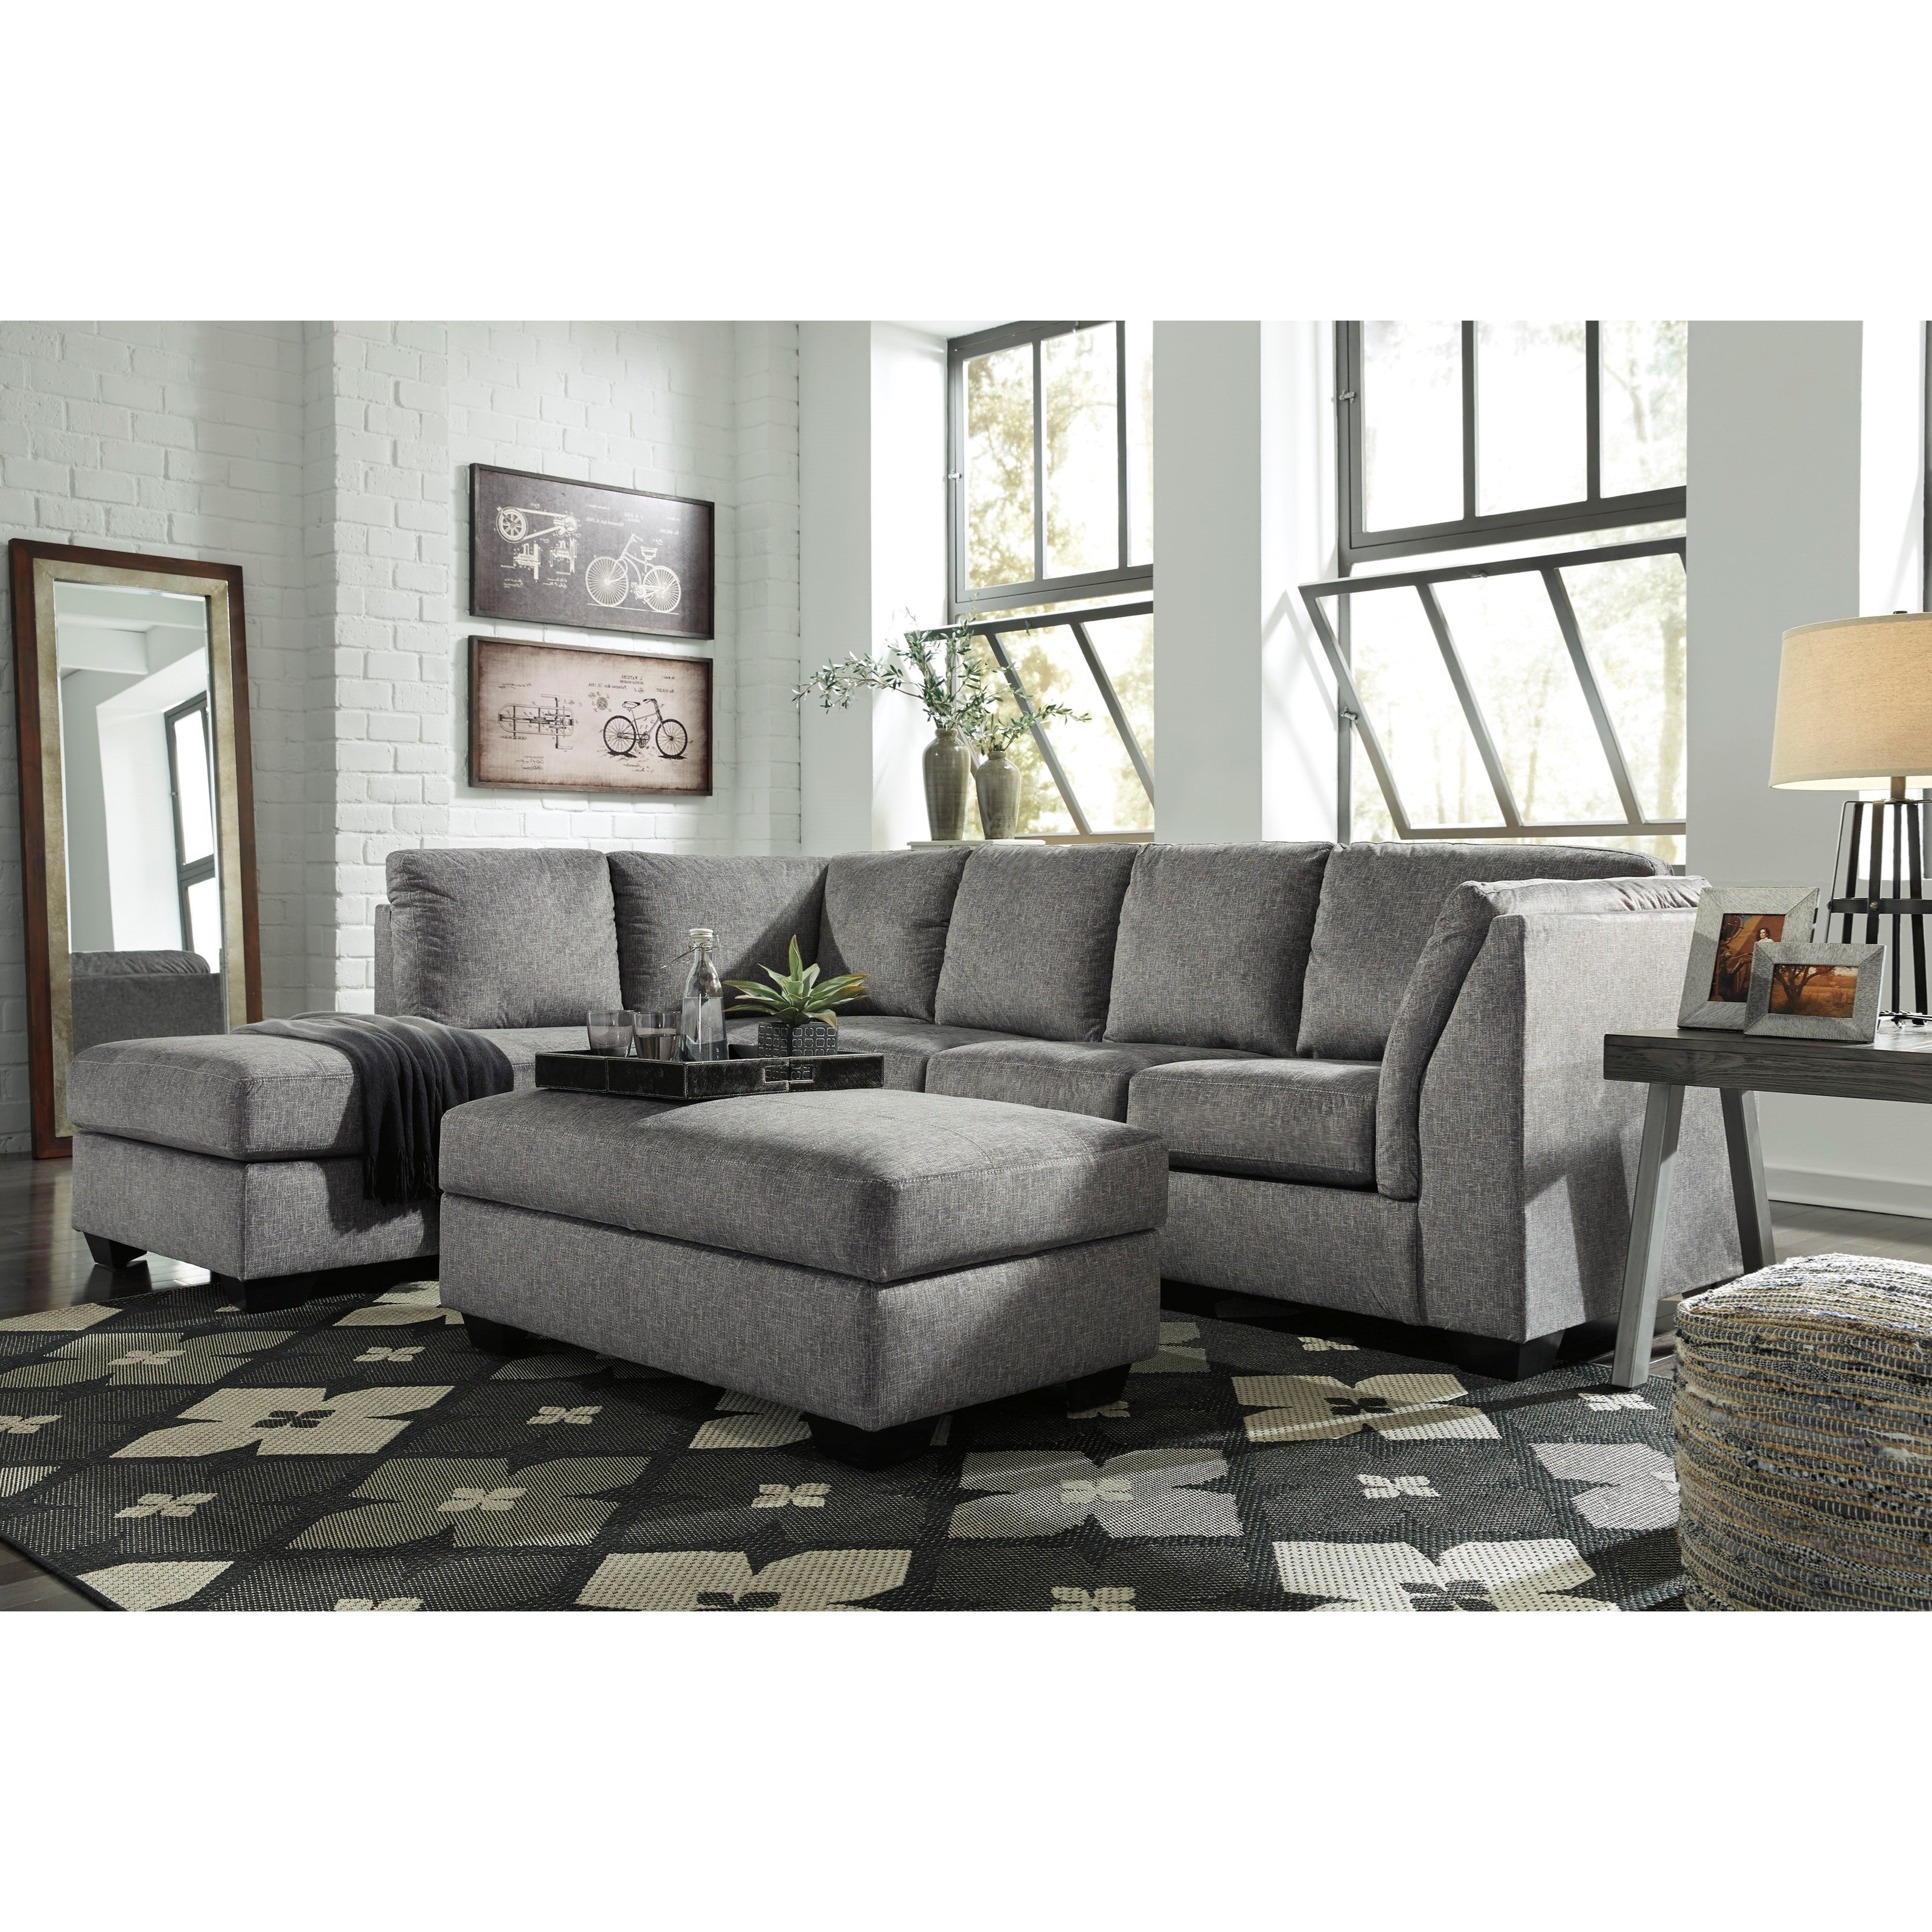 Benchcraft belcastel 2 piece sectional with left chaise for Andrea 2 piece sleeper chaise